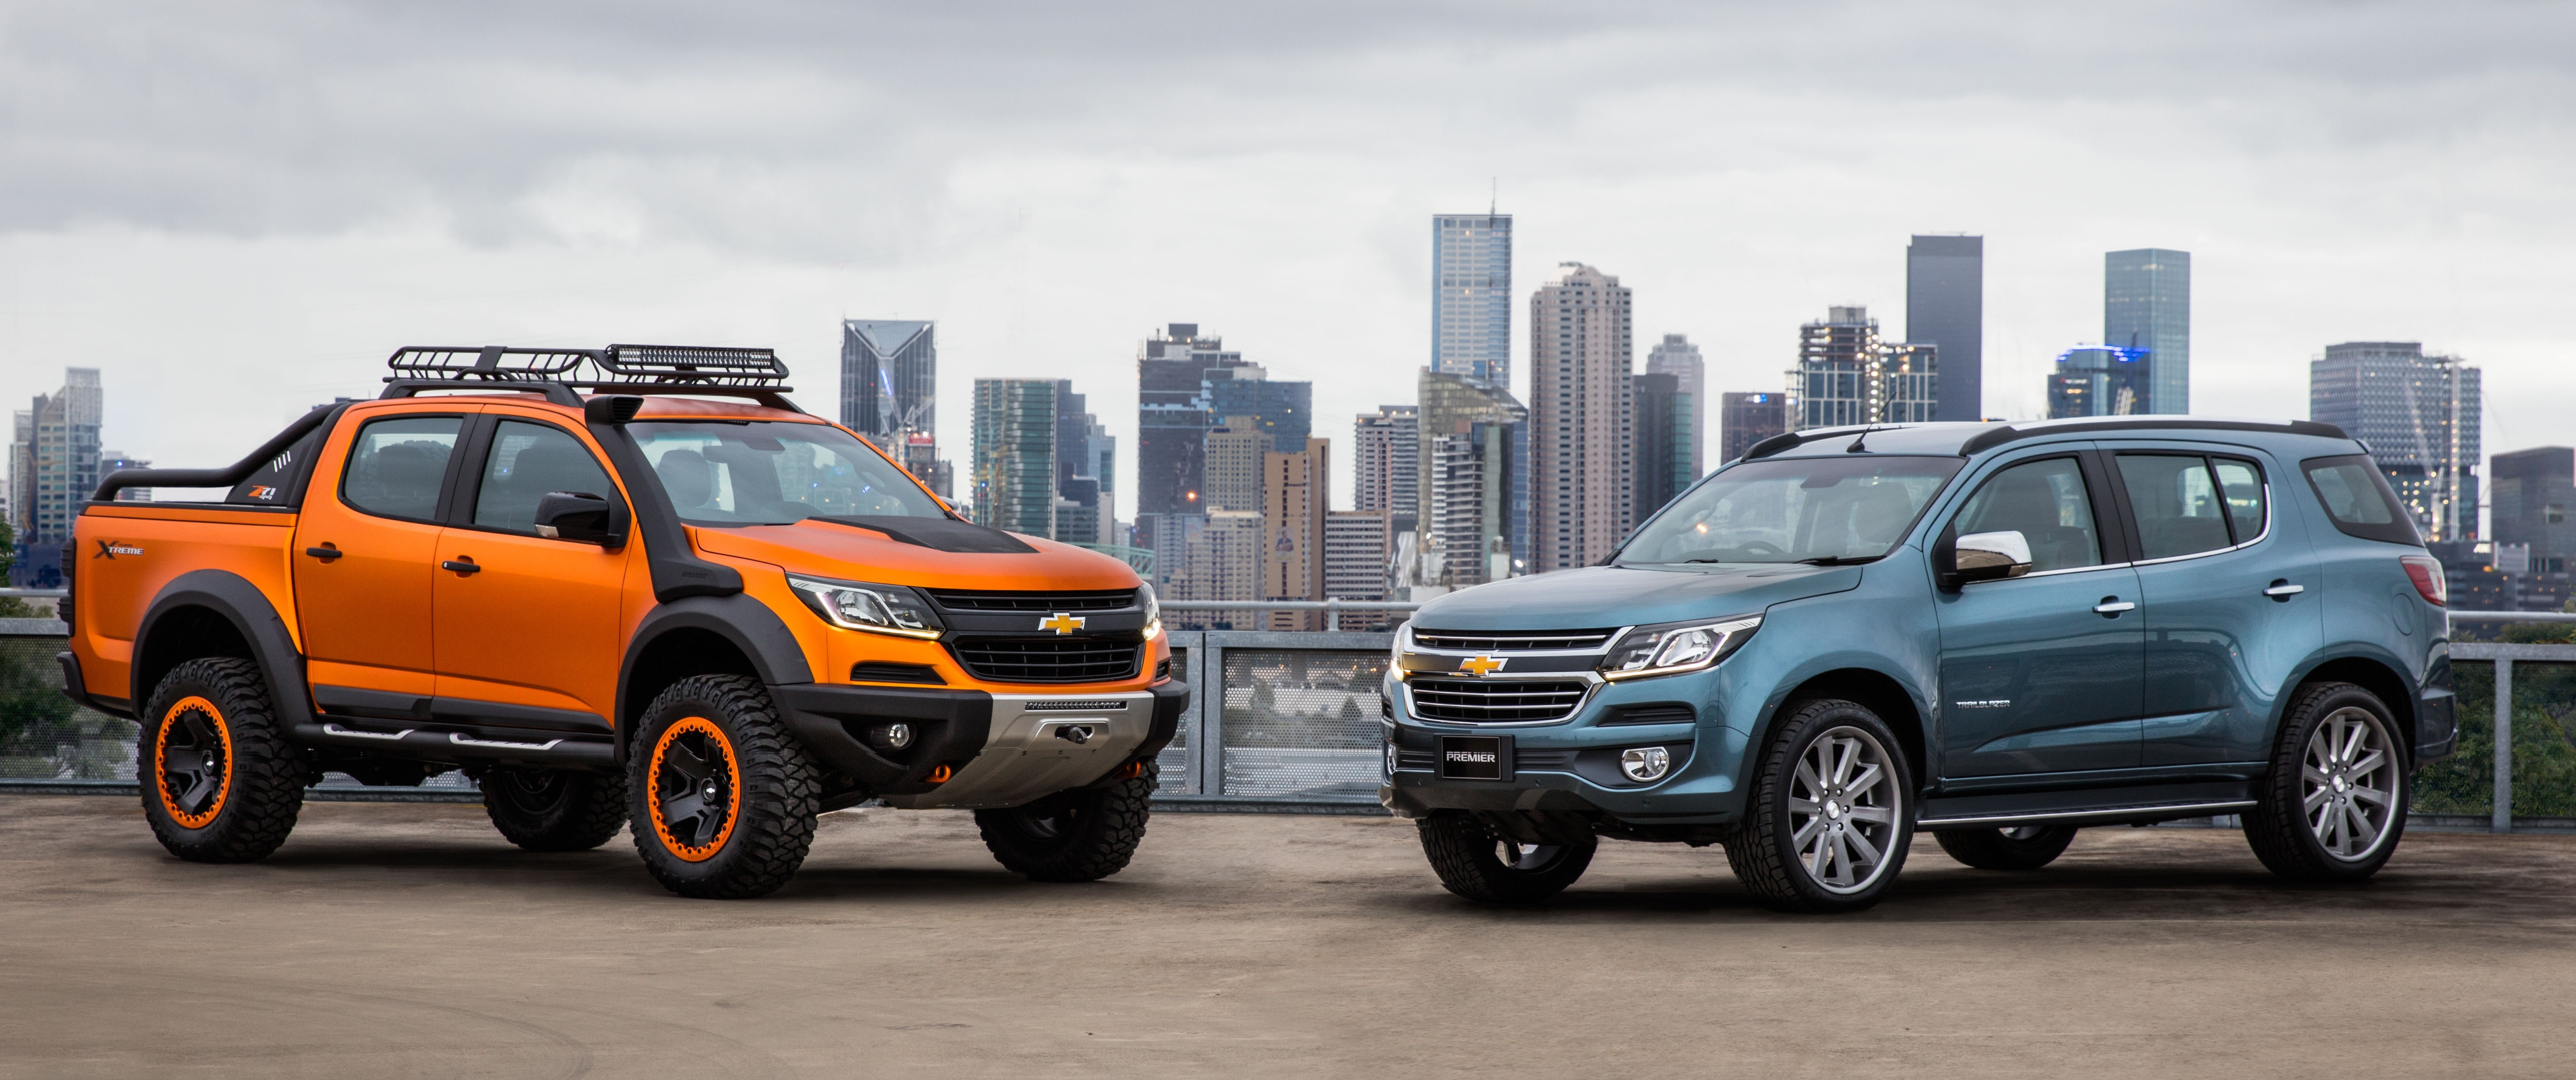 Your resolution 1024x1024 available resolutions pc mac android ios custom author chevrolet tags chevrolet colorado xtreme